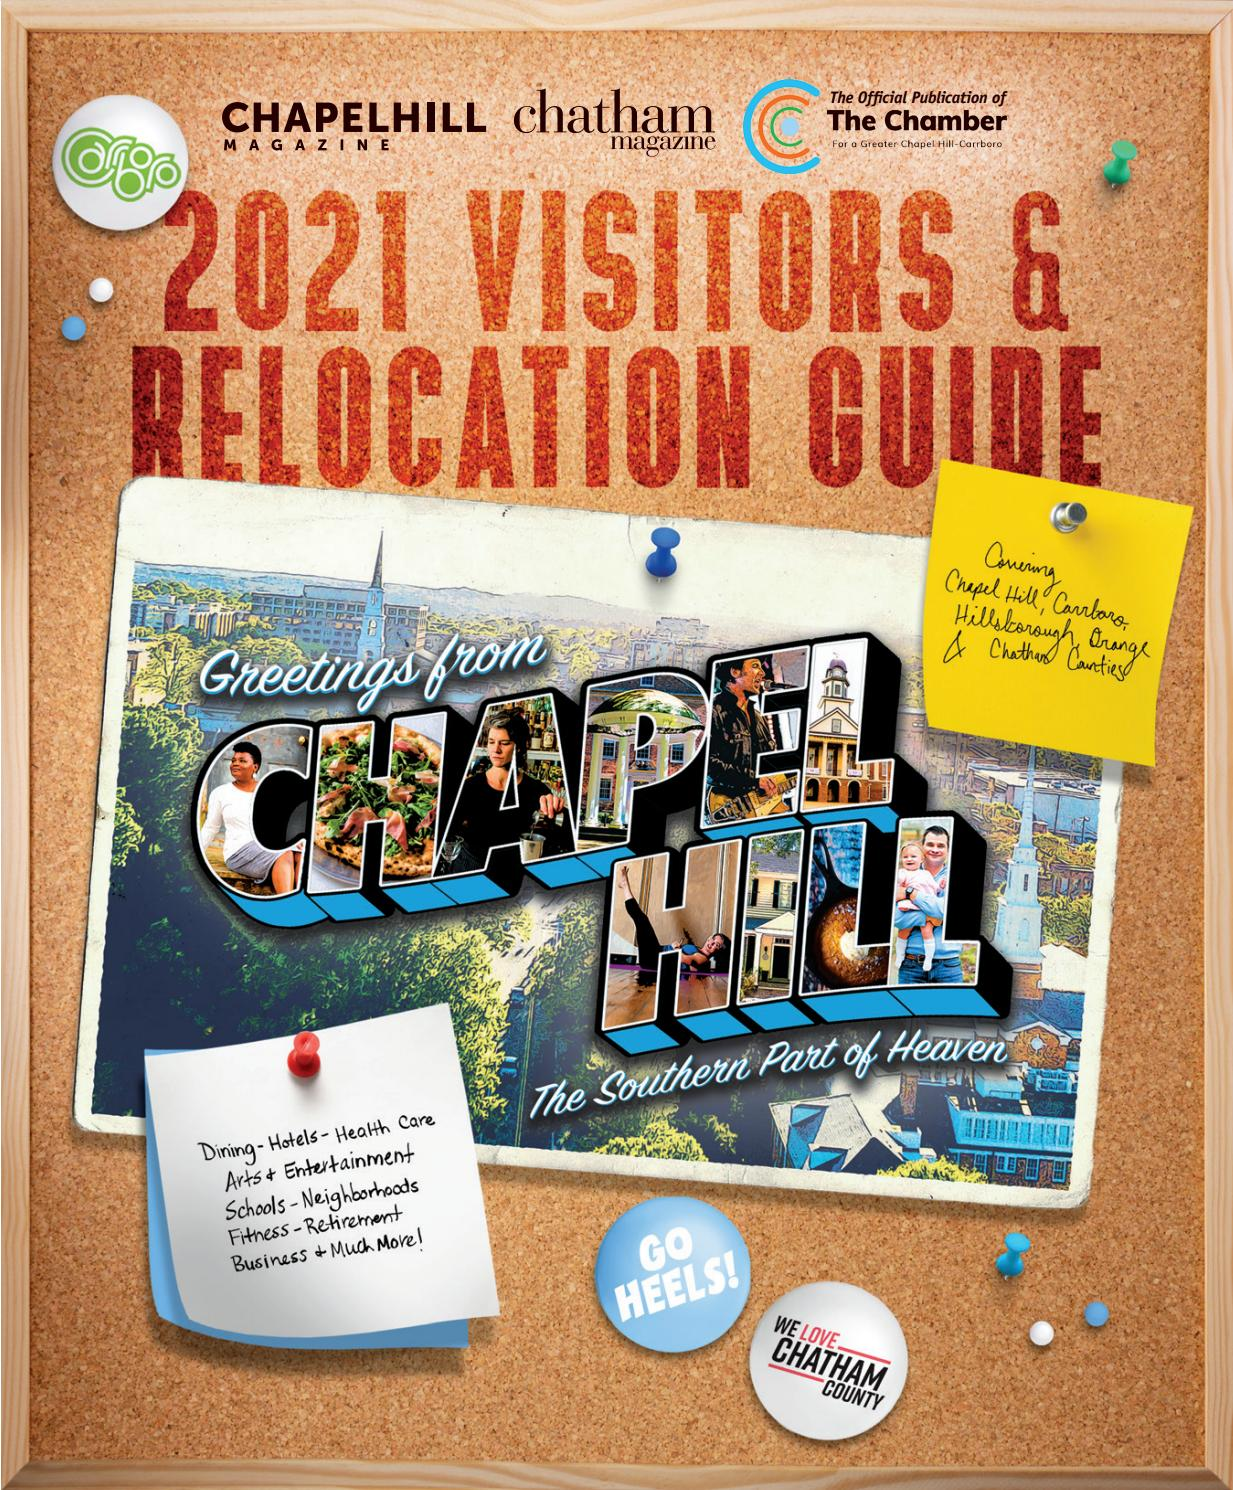 Chapel Hill Magazine Chatham Magazine 2021 Visitors Relocation Guide By Shannon Media Issuu